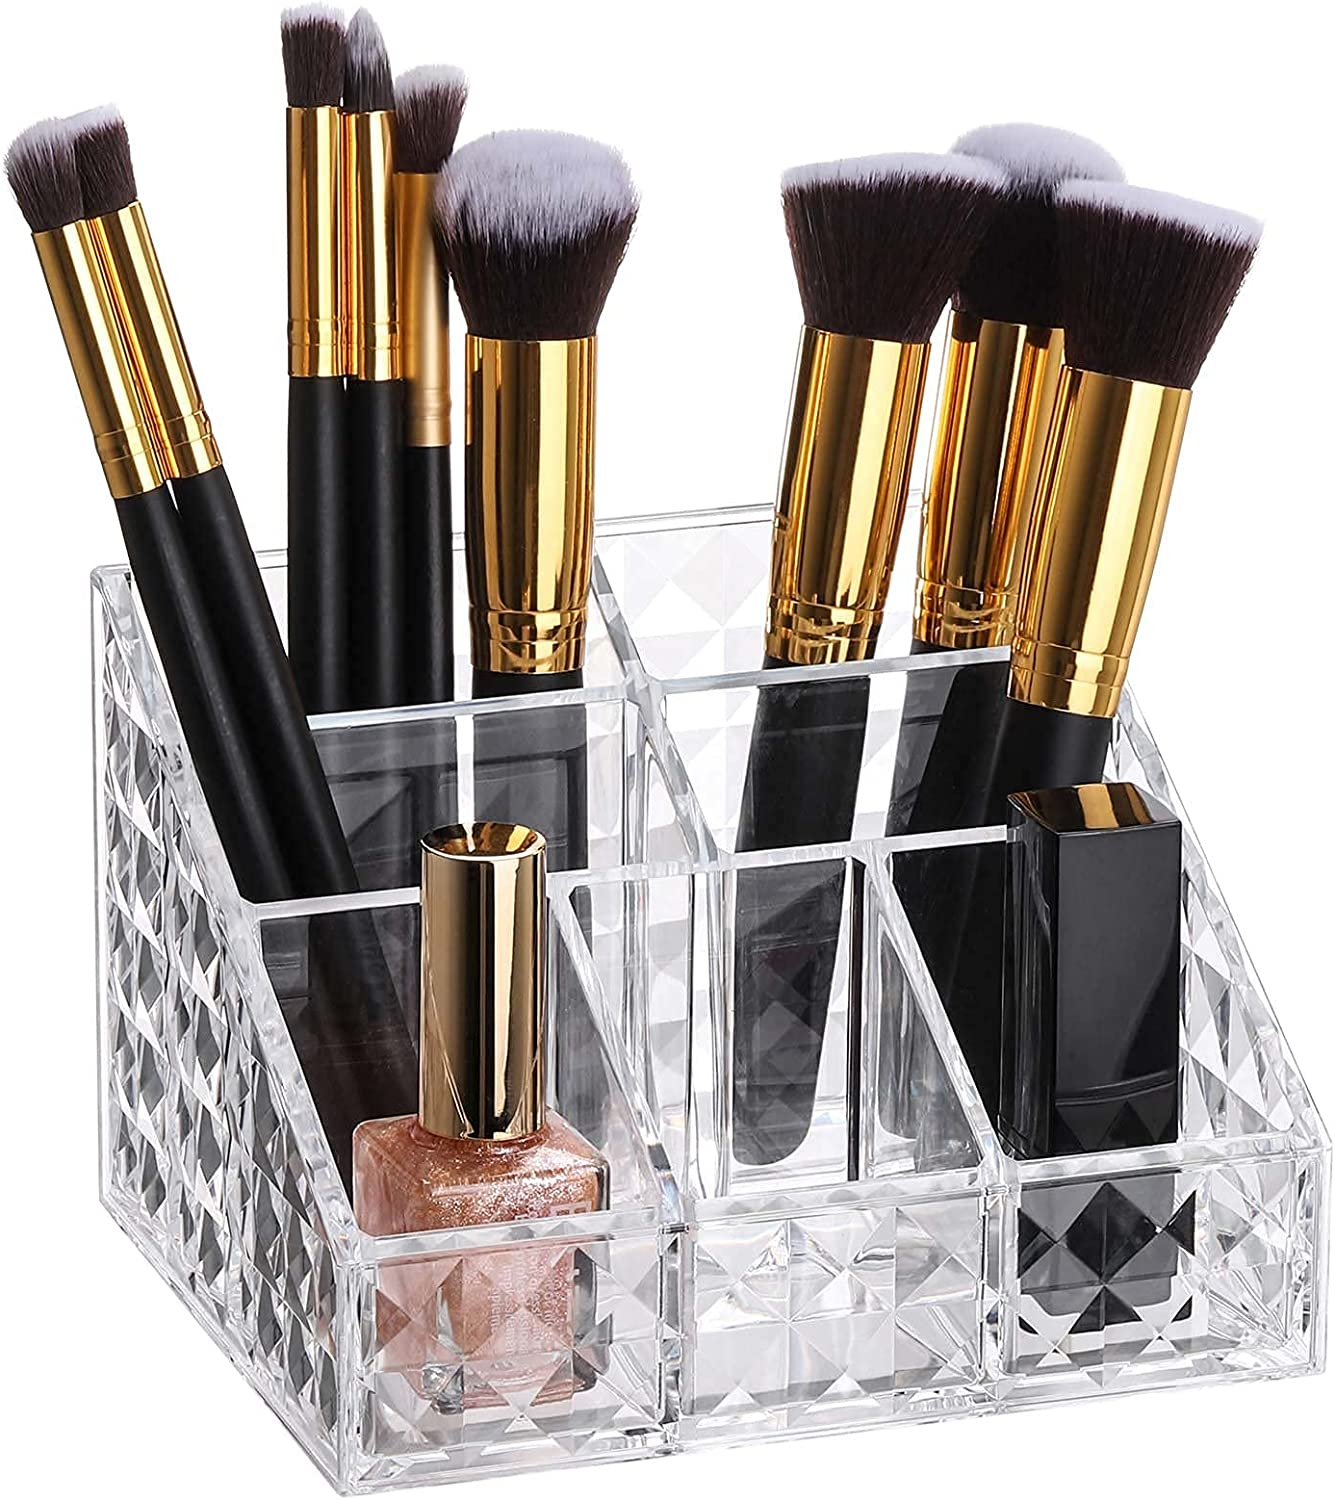 Clear Special Campaign Makeup Organizer Brush Overseas parallel import regular item 7-Compartment Cosmetics Holders Dis